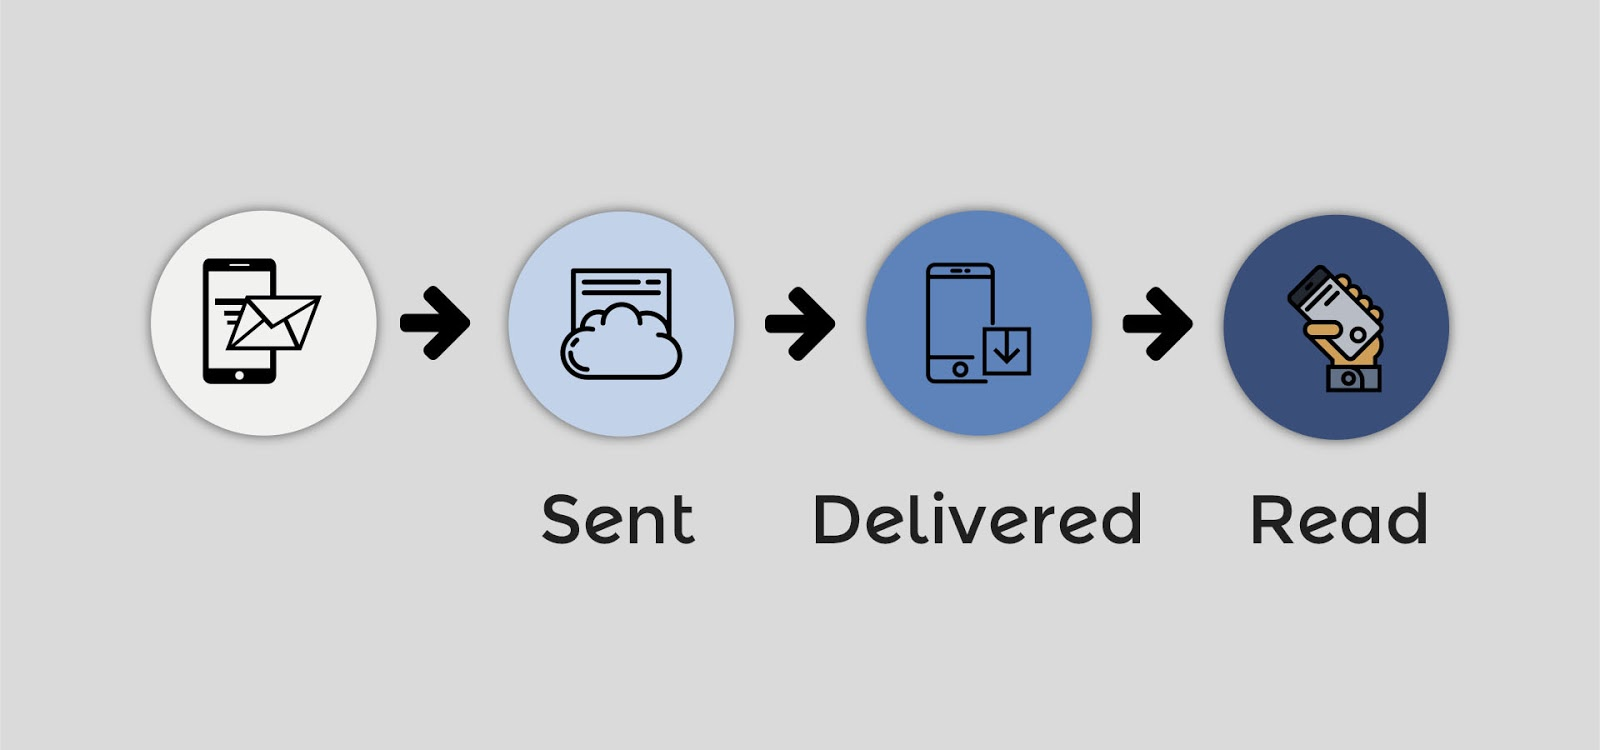 Sent, Delivered, and Read flowchart of the message delivery process